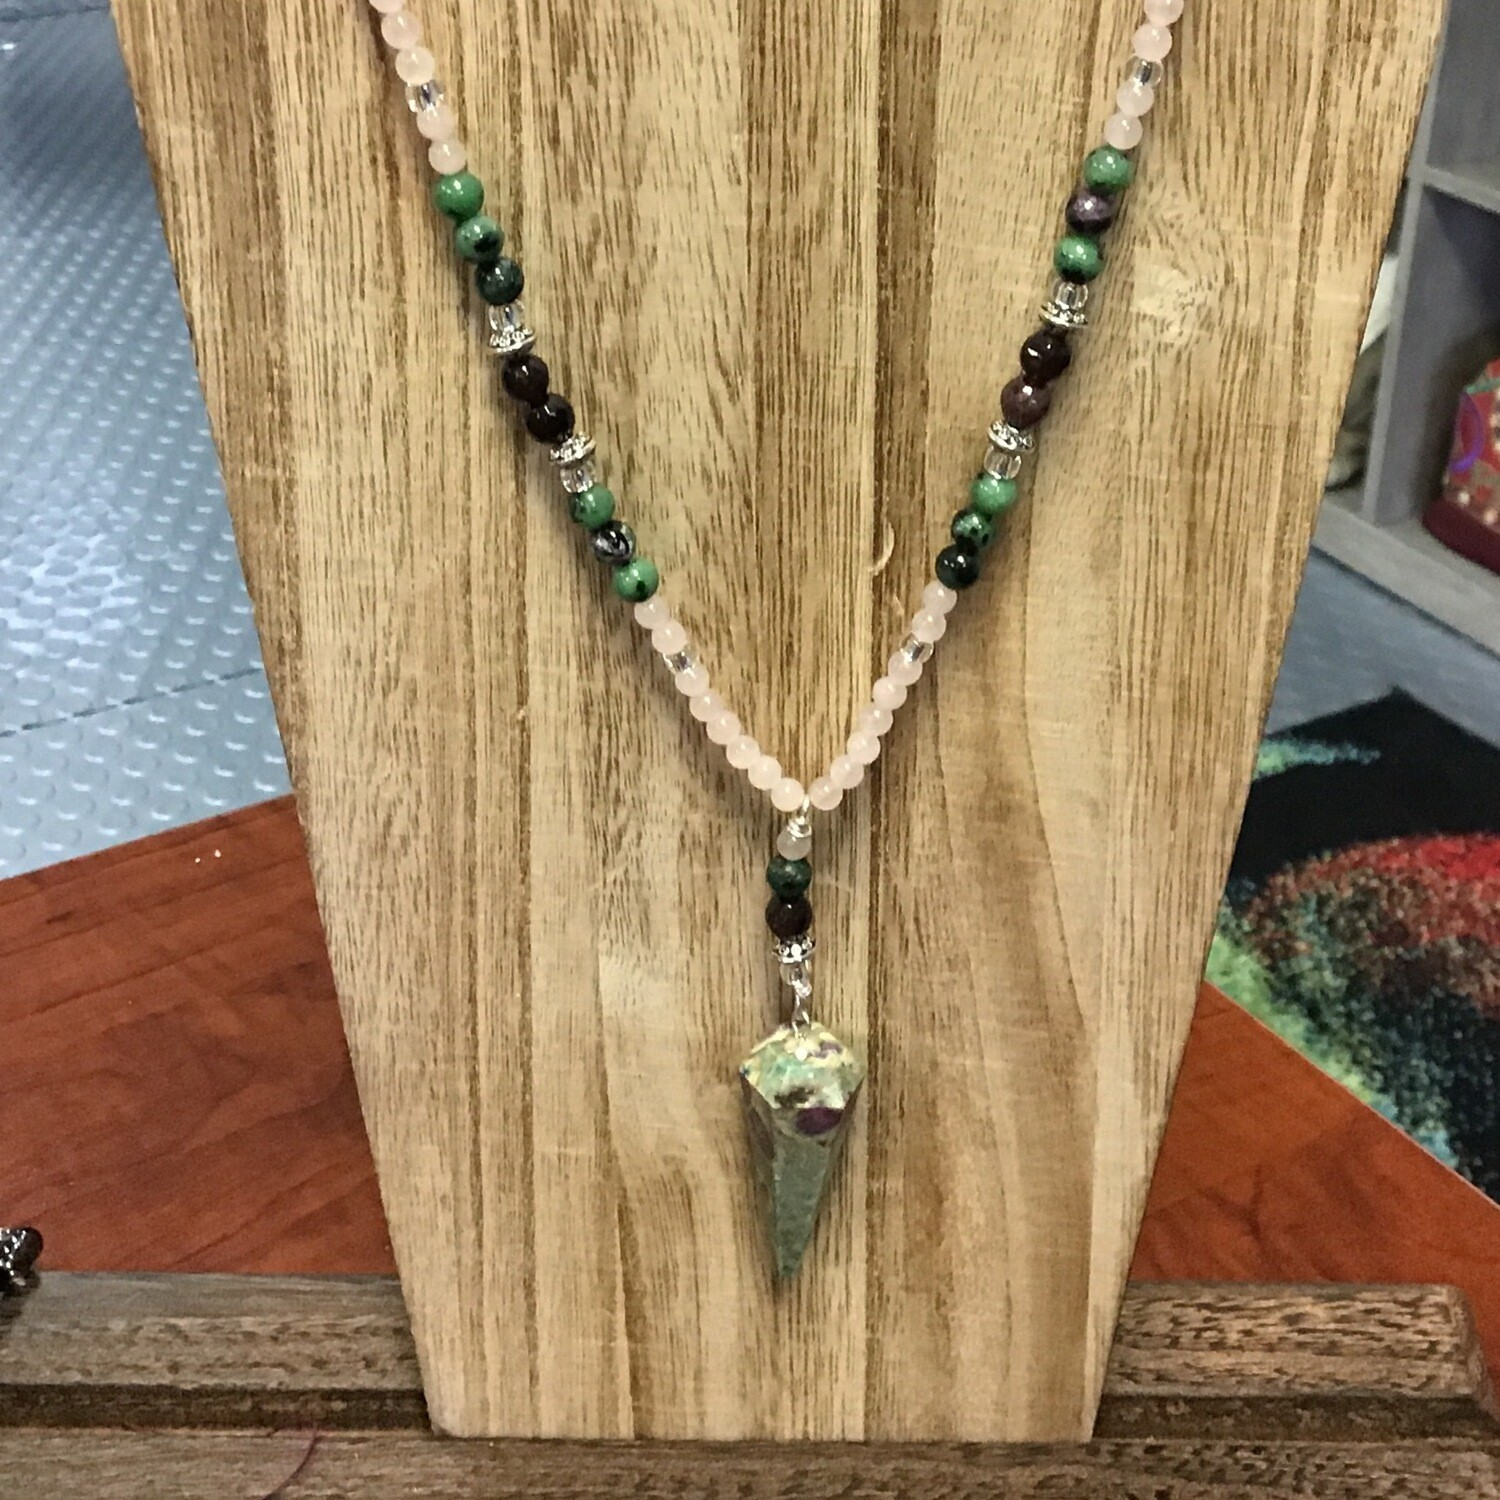 Ruby in Zoisite & Rose Quartz Pendulum Necklace